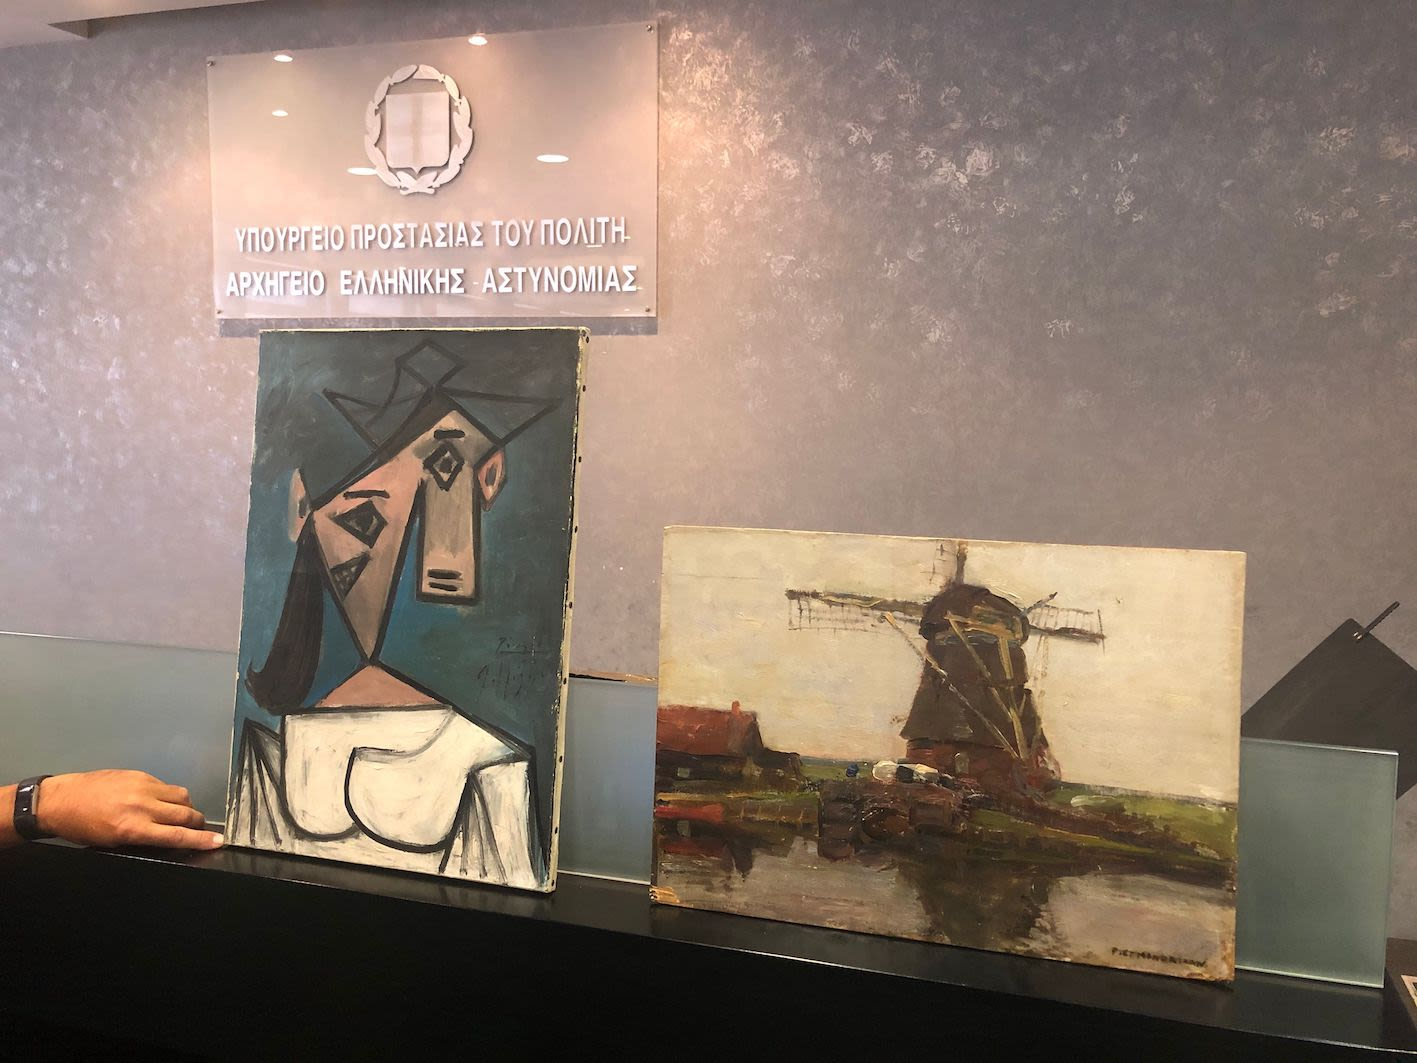 Stolen Picasso and Mondrian art works returned